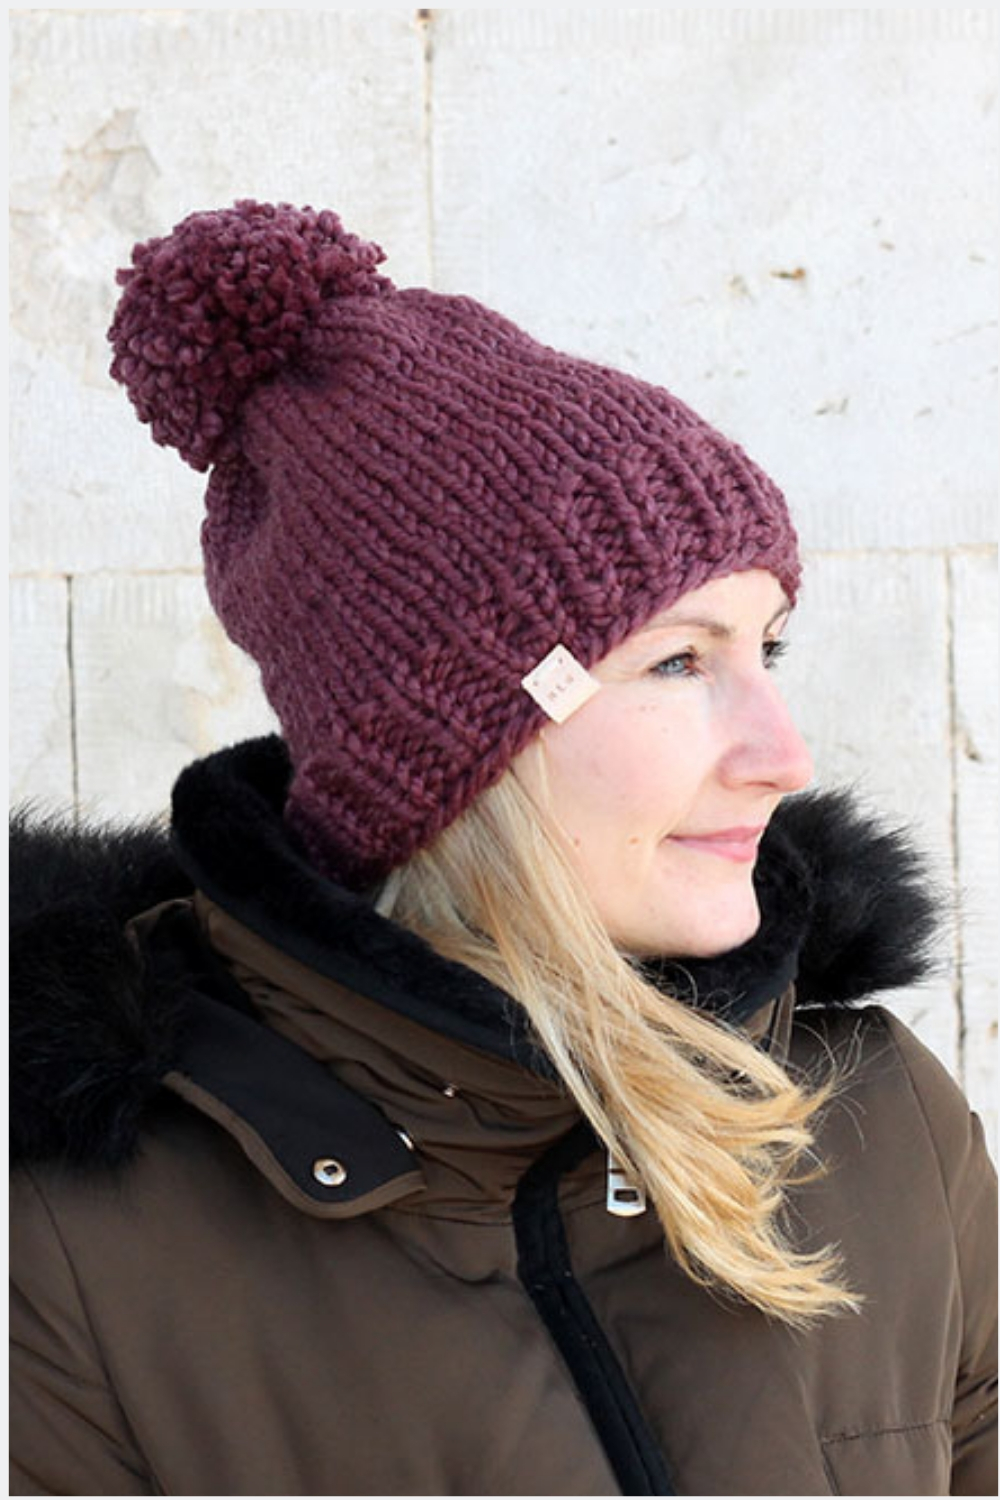 Beginner Hat Knitting Pattern - Knit In The Round